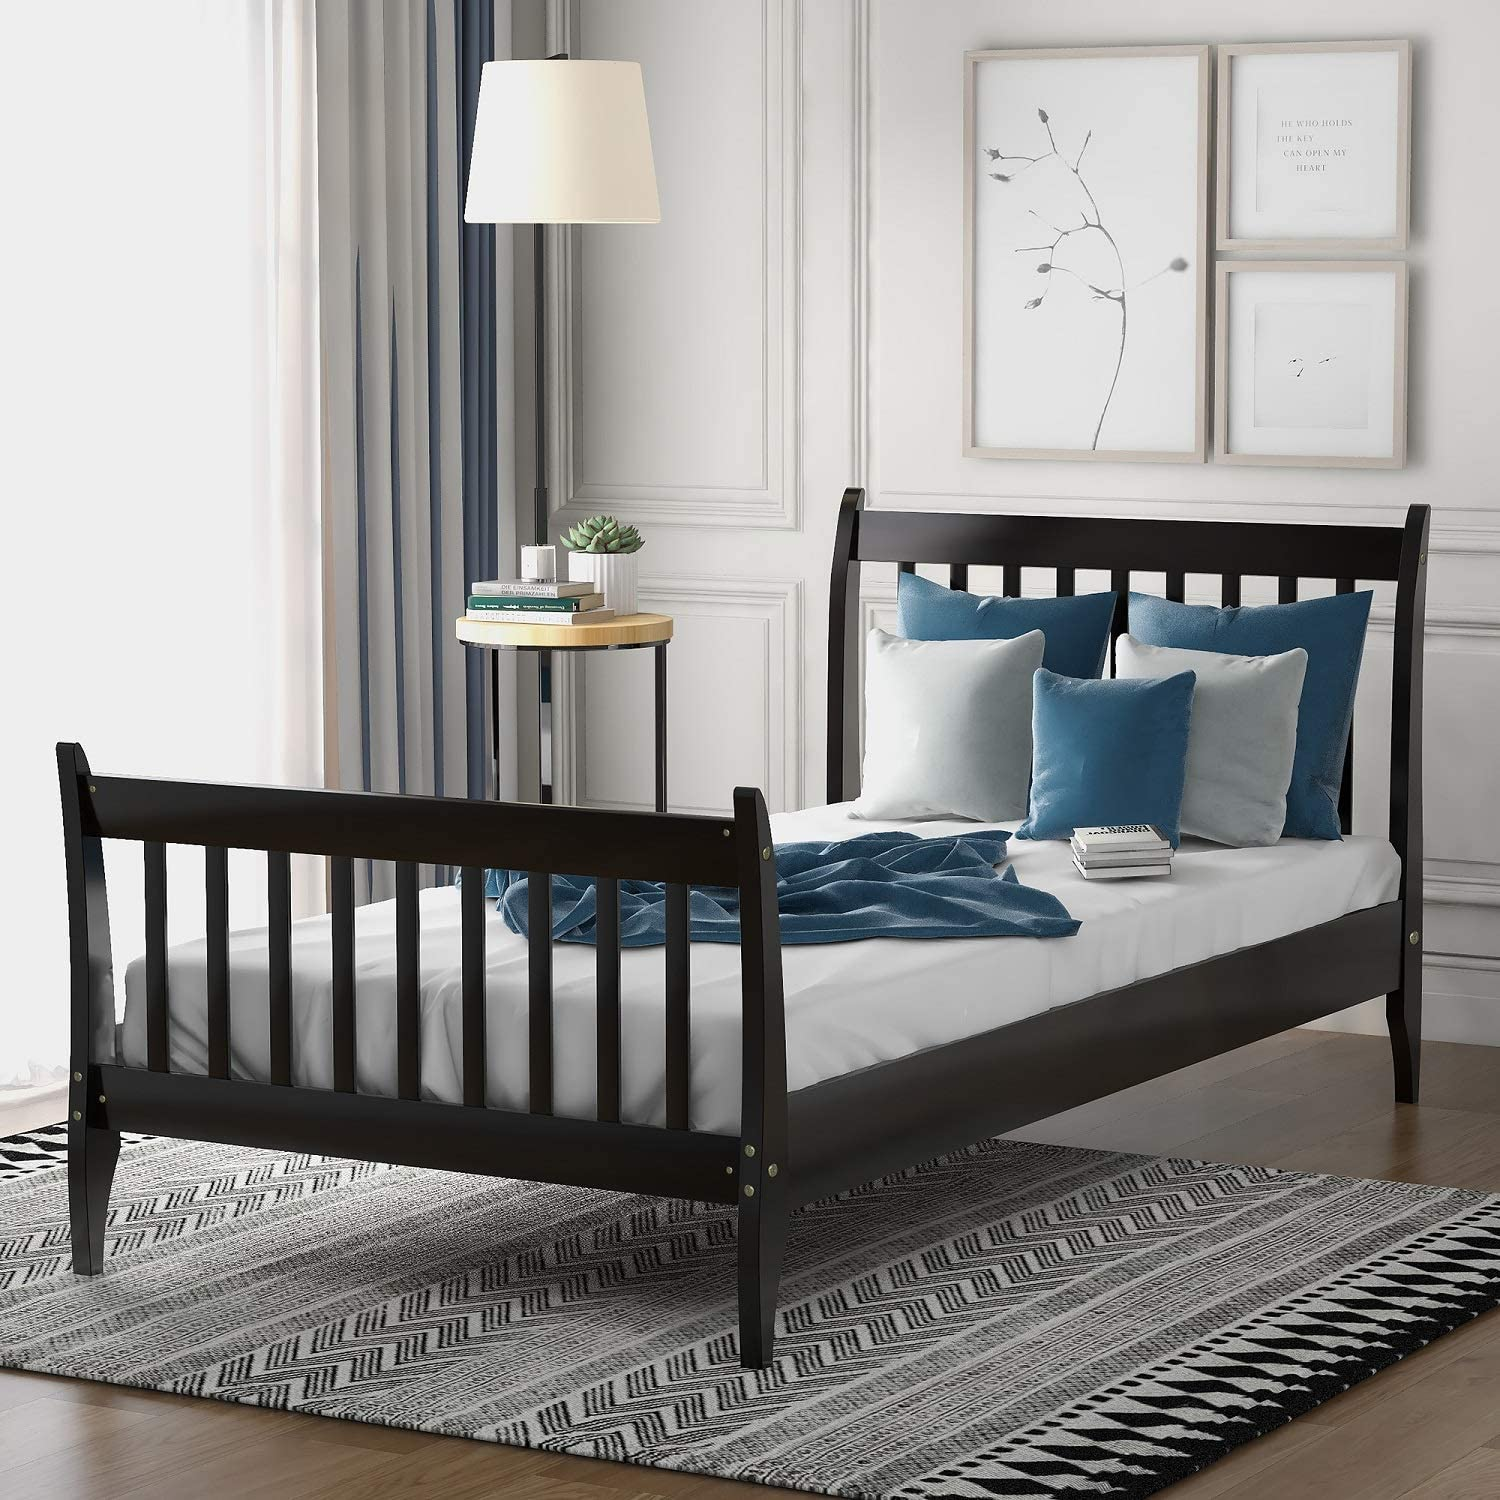 Danxee Wood Twin Bed Frame With Headboard And Footboard Platform Bed Frame Mattress Foundation With Wood Slat Support For Kids Teens Twin Espresso Furniture Decor